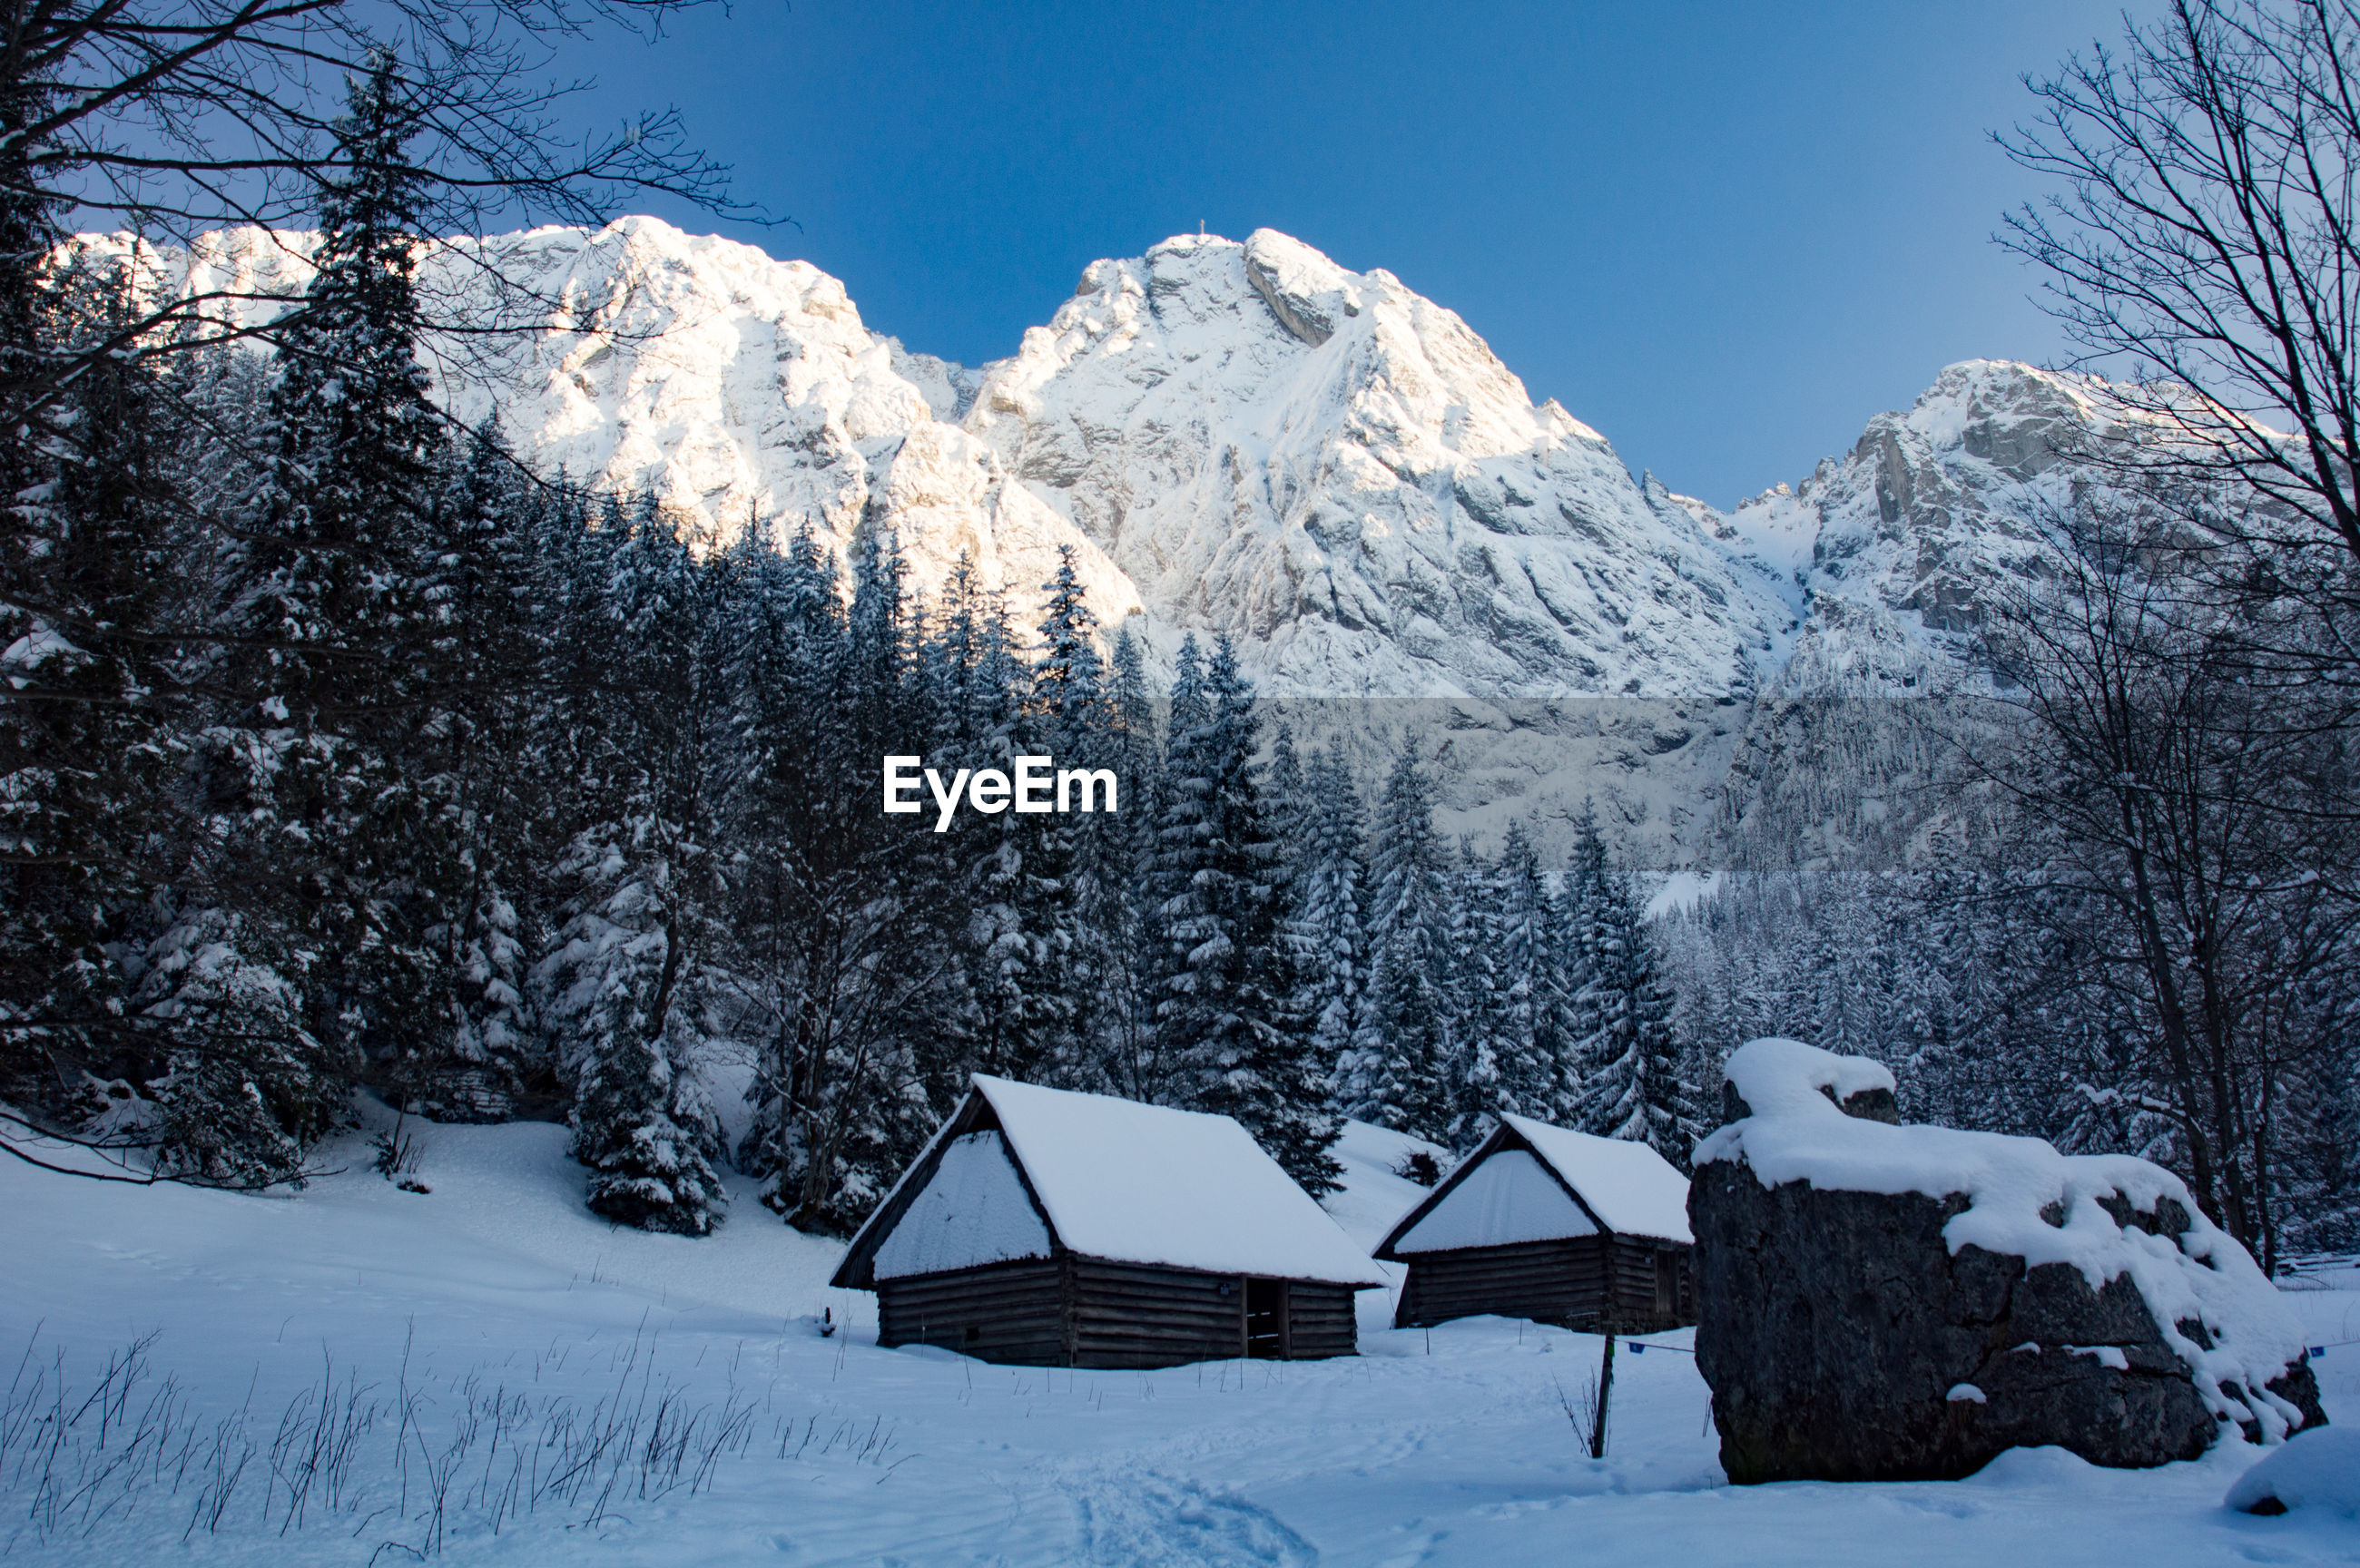 SNOW COVERED LANDSCAPE AGAINST MOUNTAIN